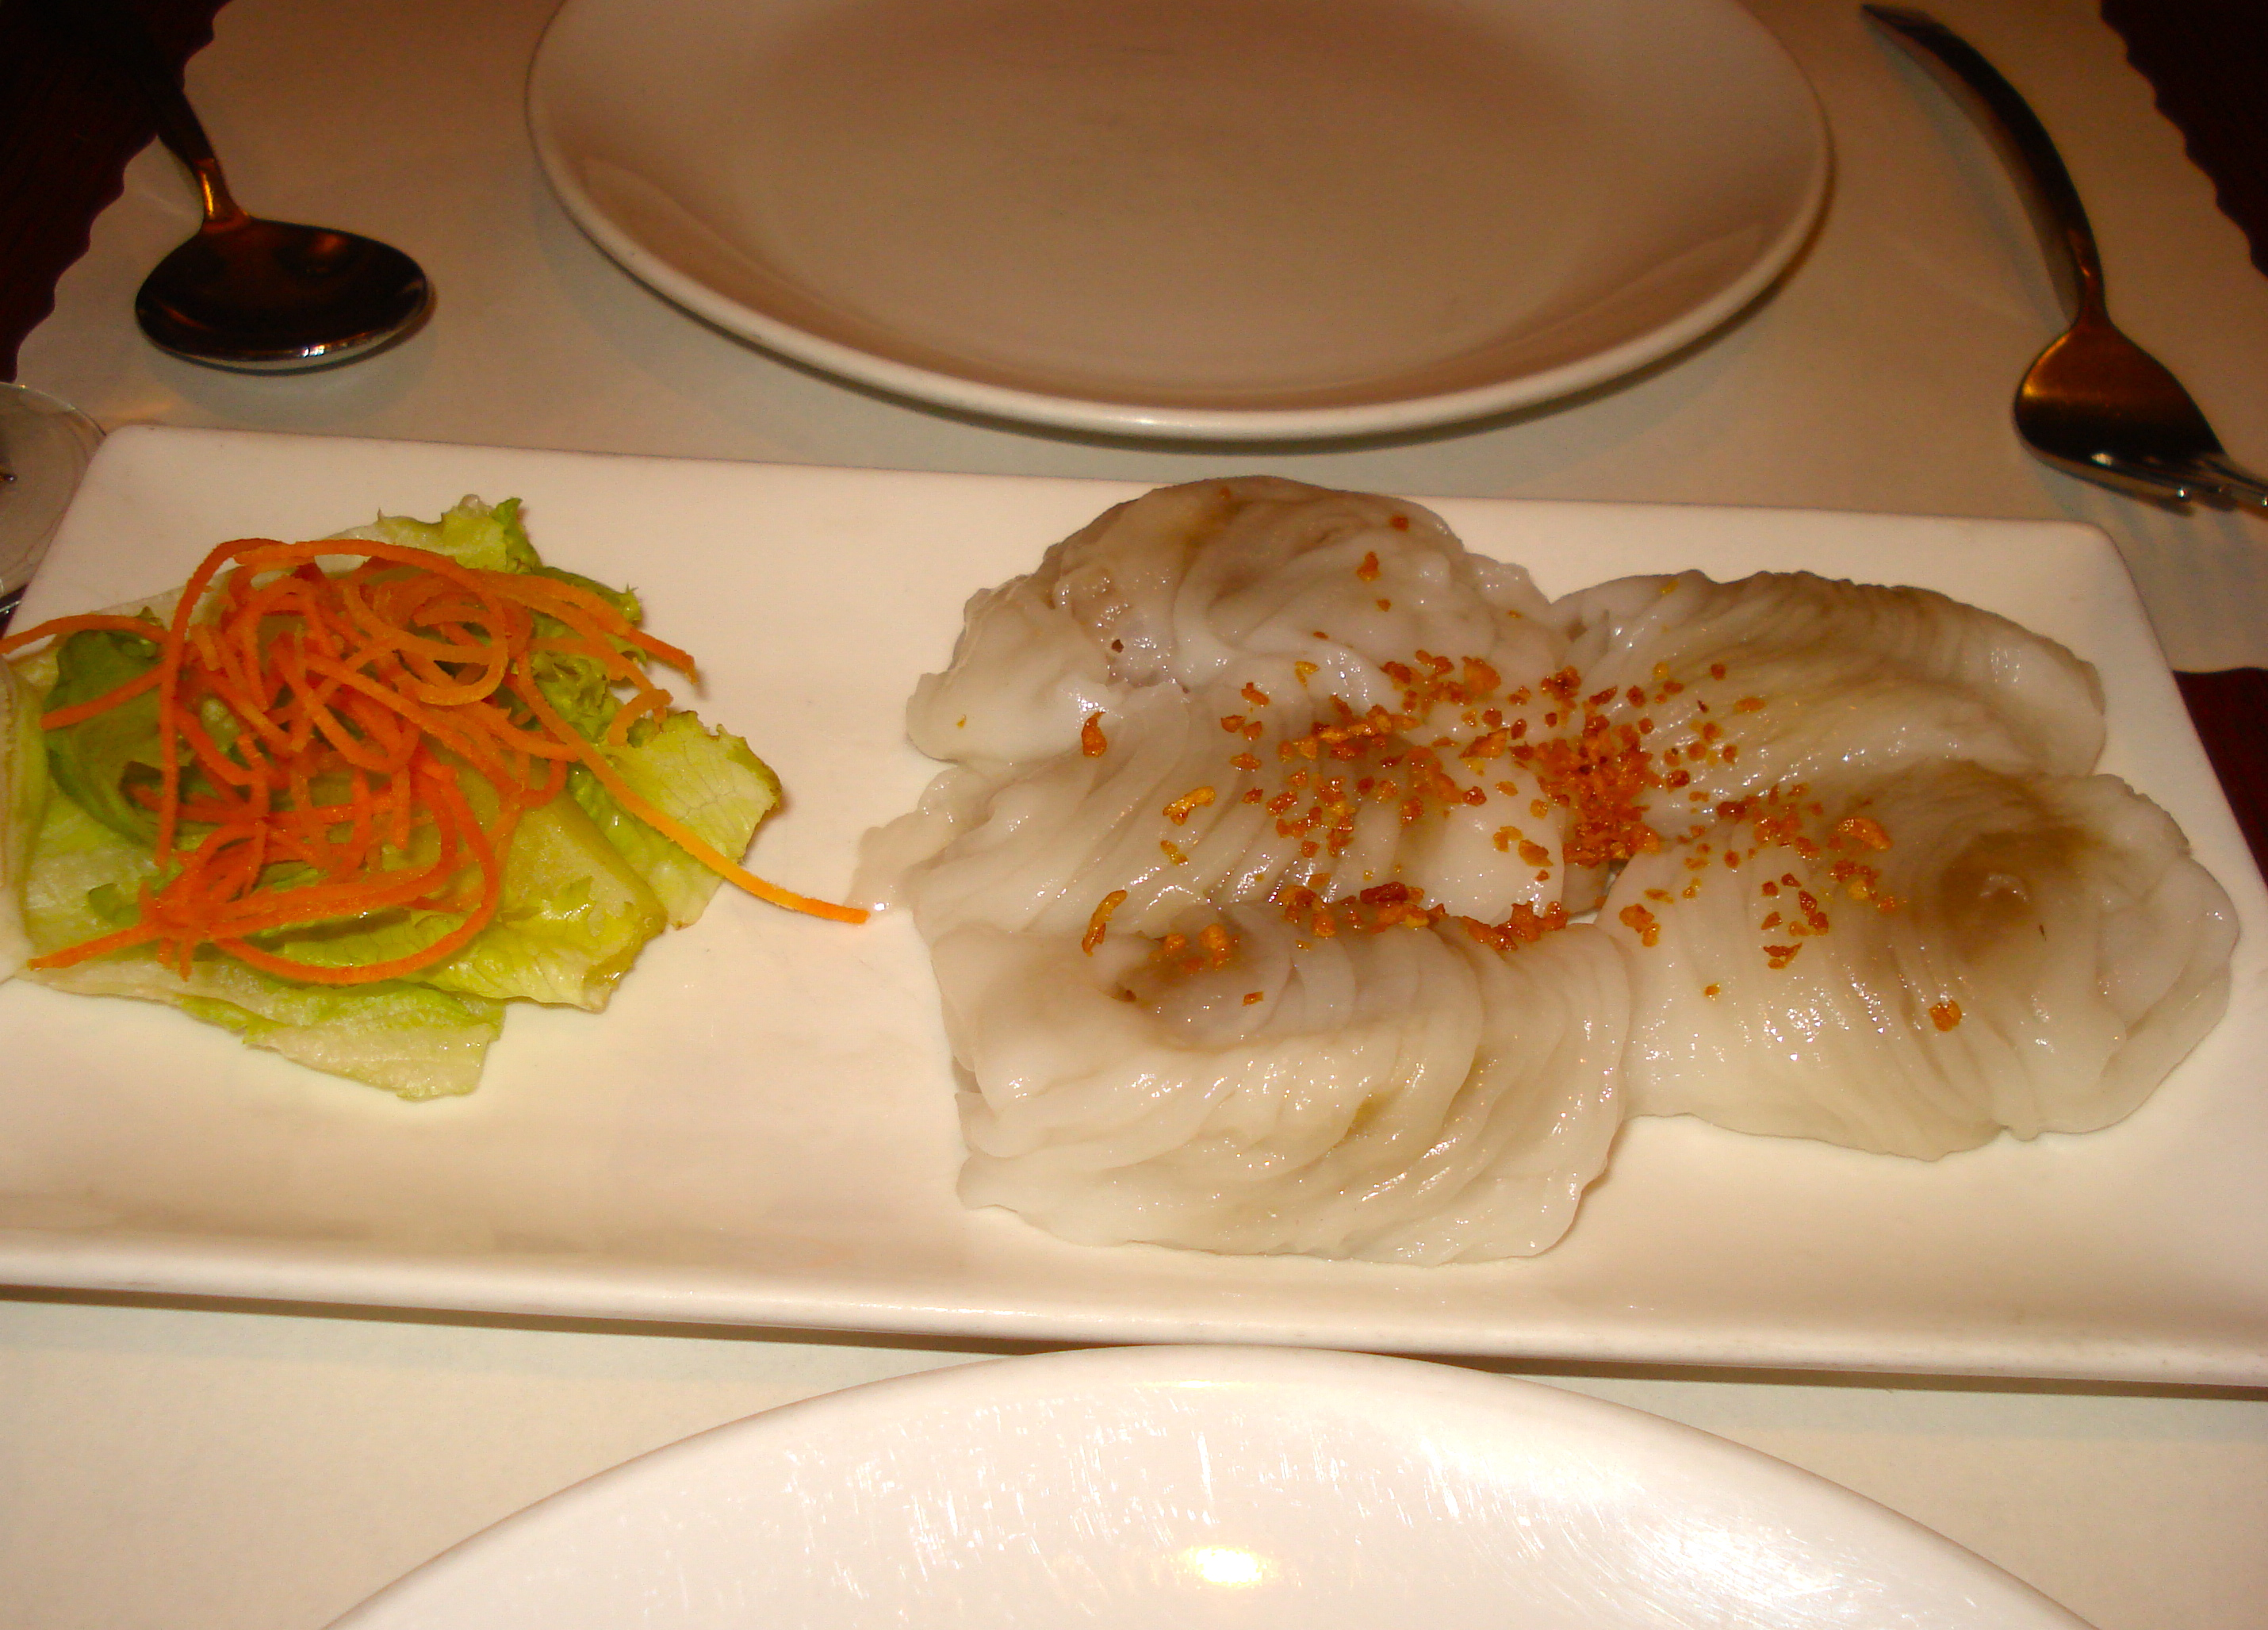 Steamed dumplings, because you can never have too many dumplings.